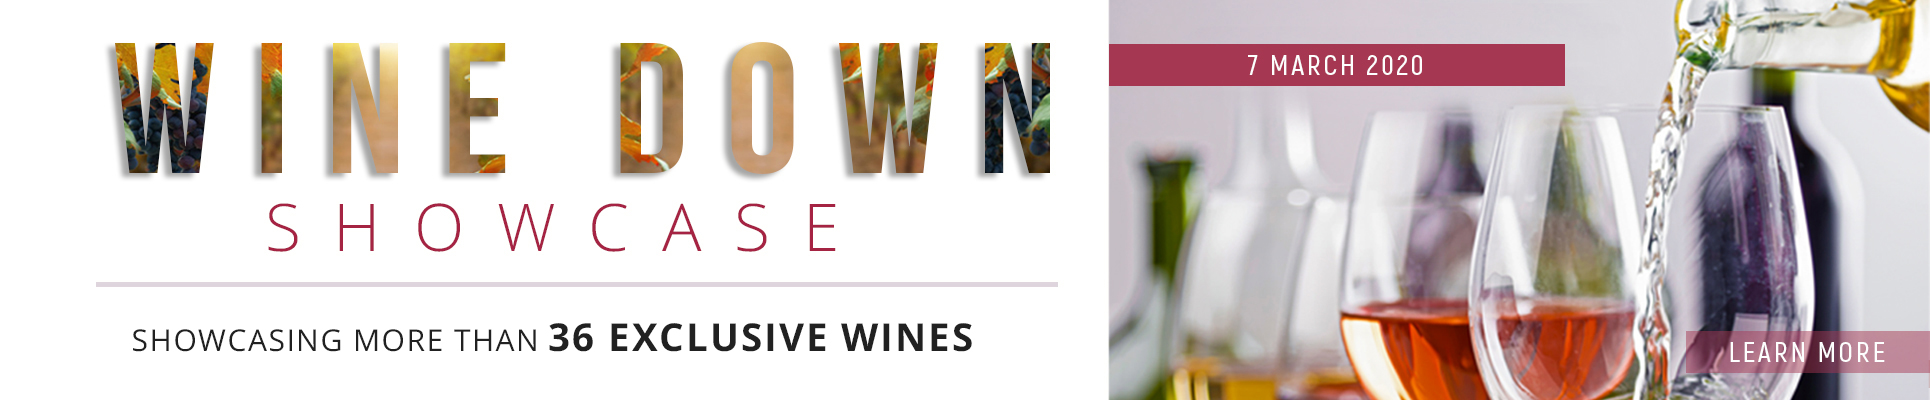 WINE DOWN SHOWCASE WINE TASTING AT MISTY HILLS COUNTRY HOTEL MULDERSDRIFT, GAUTENG EVENTS